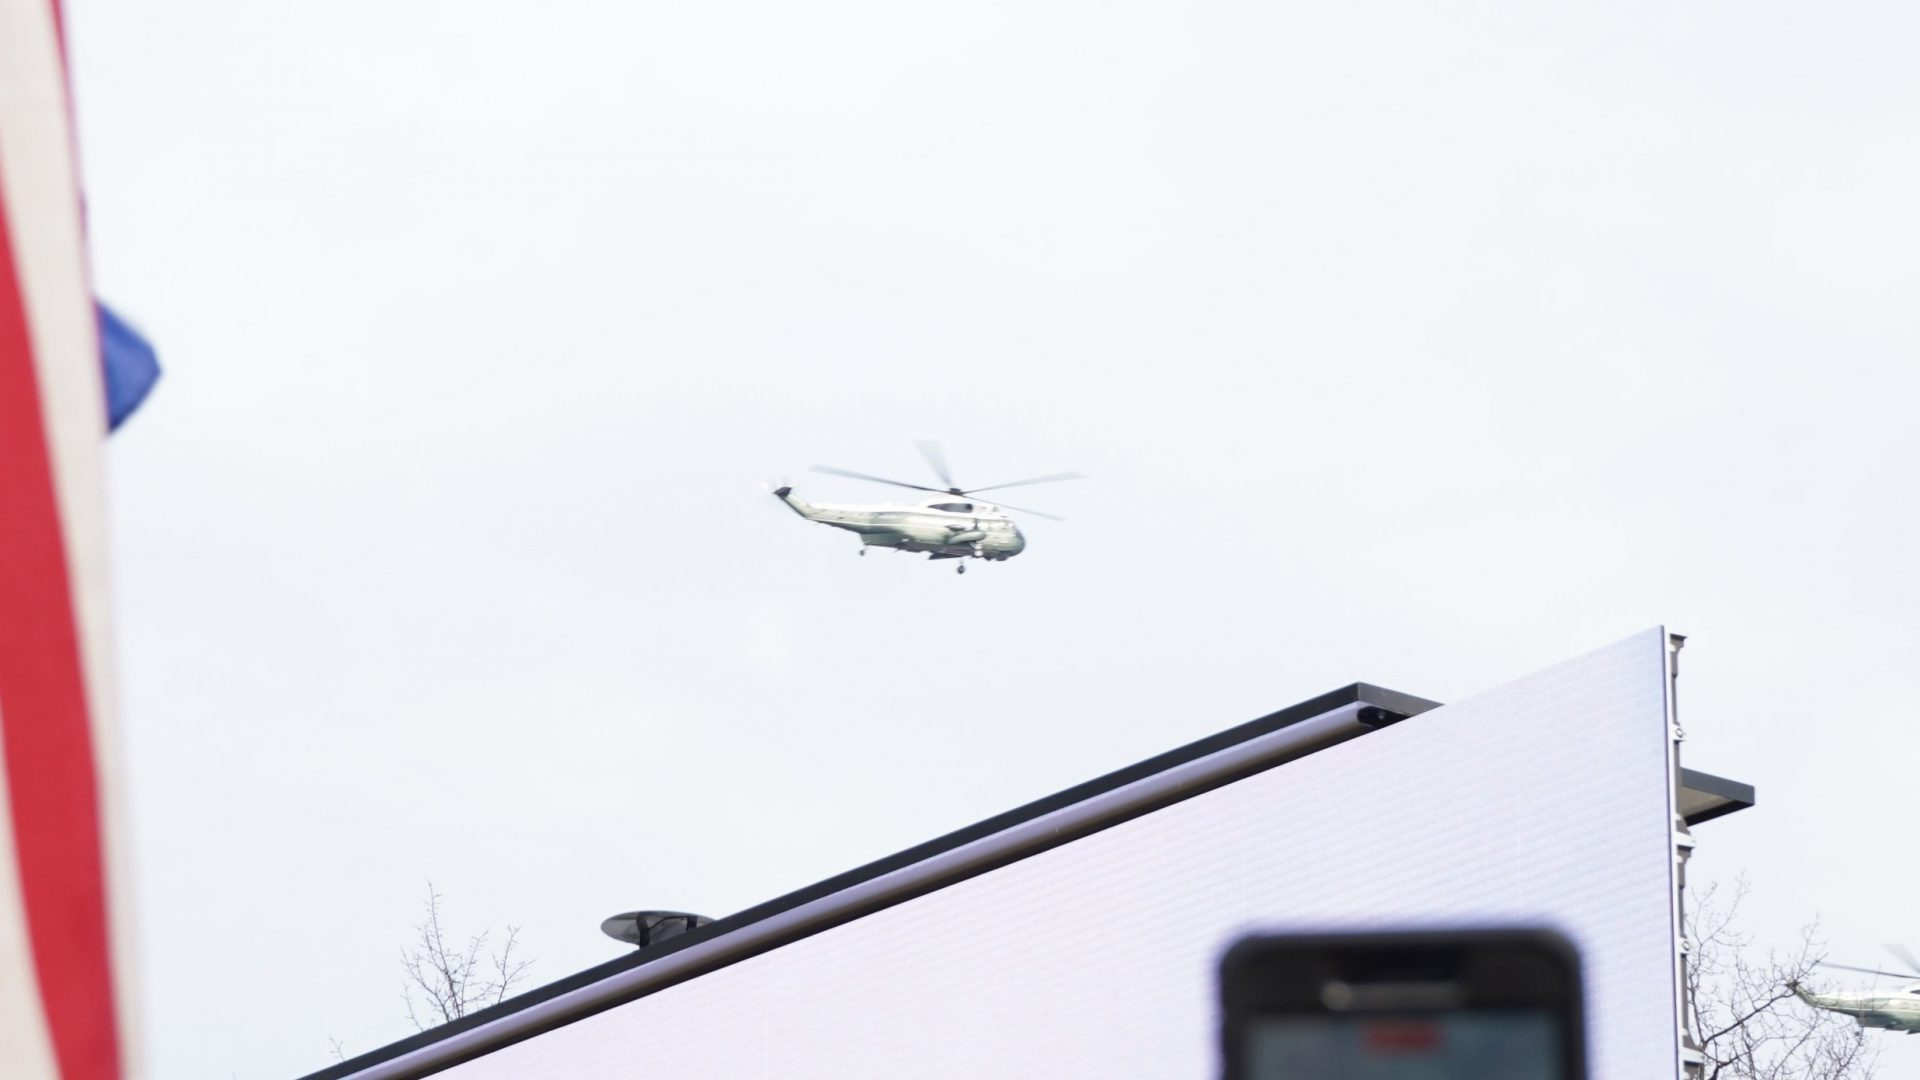 Trump's Marine One fly over crowd